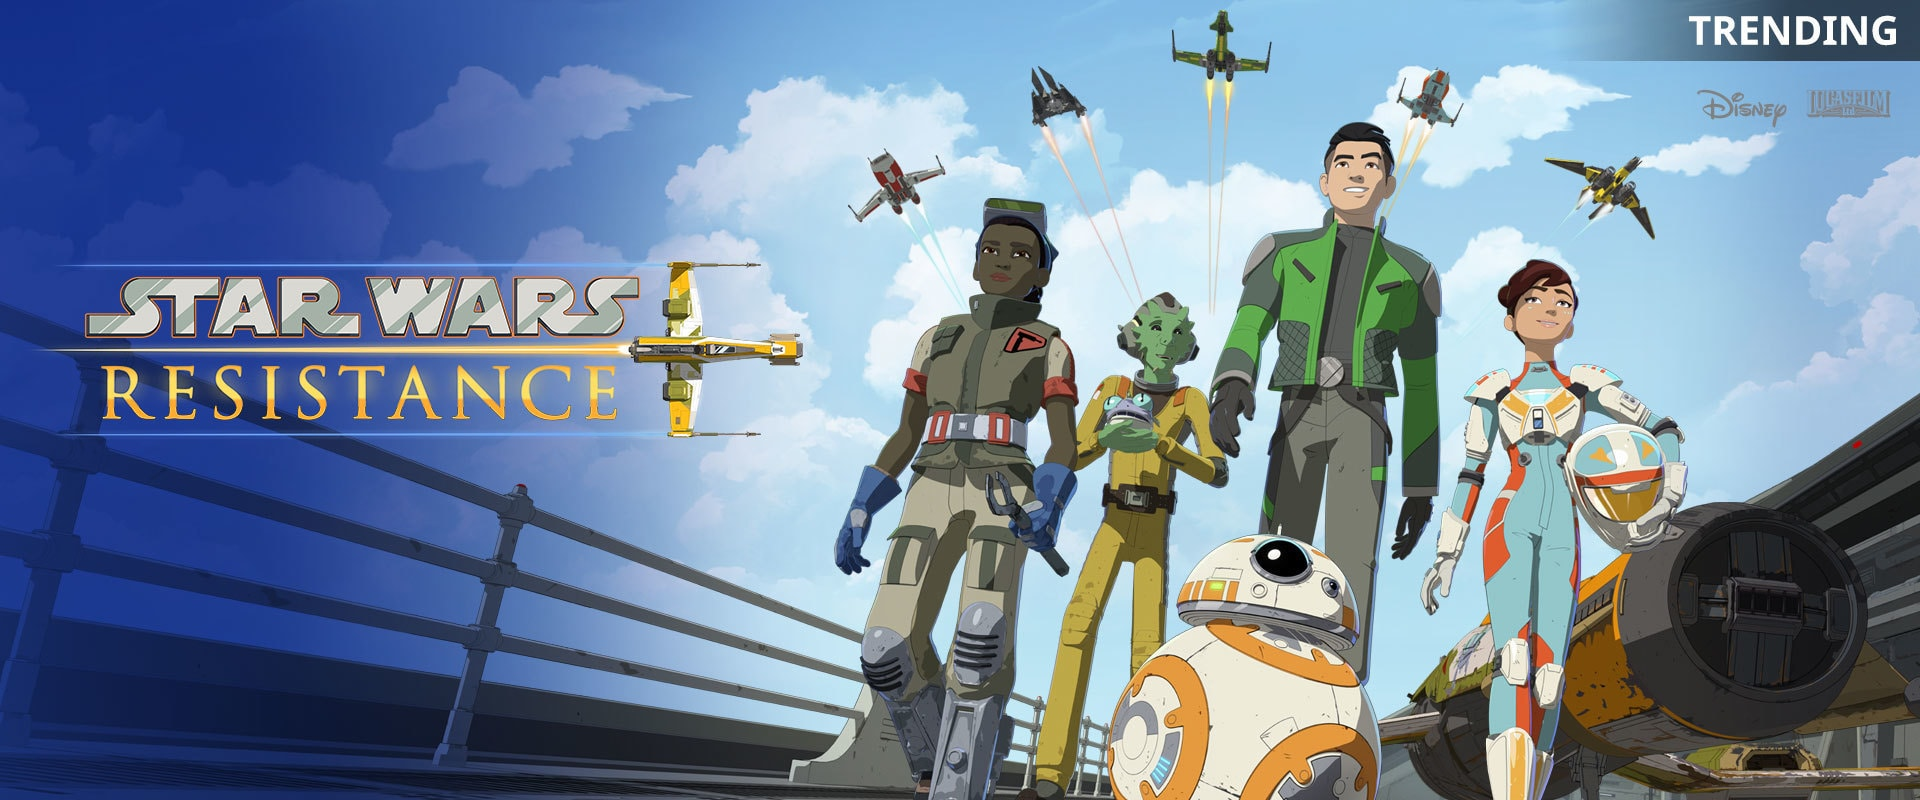 Star Wars Resistance | TV | Trending